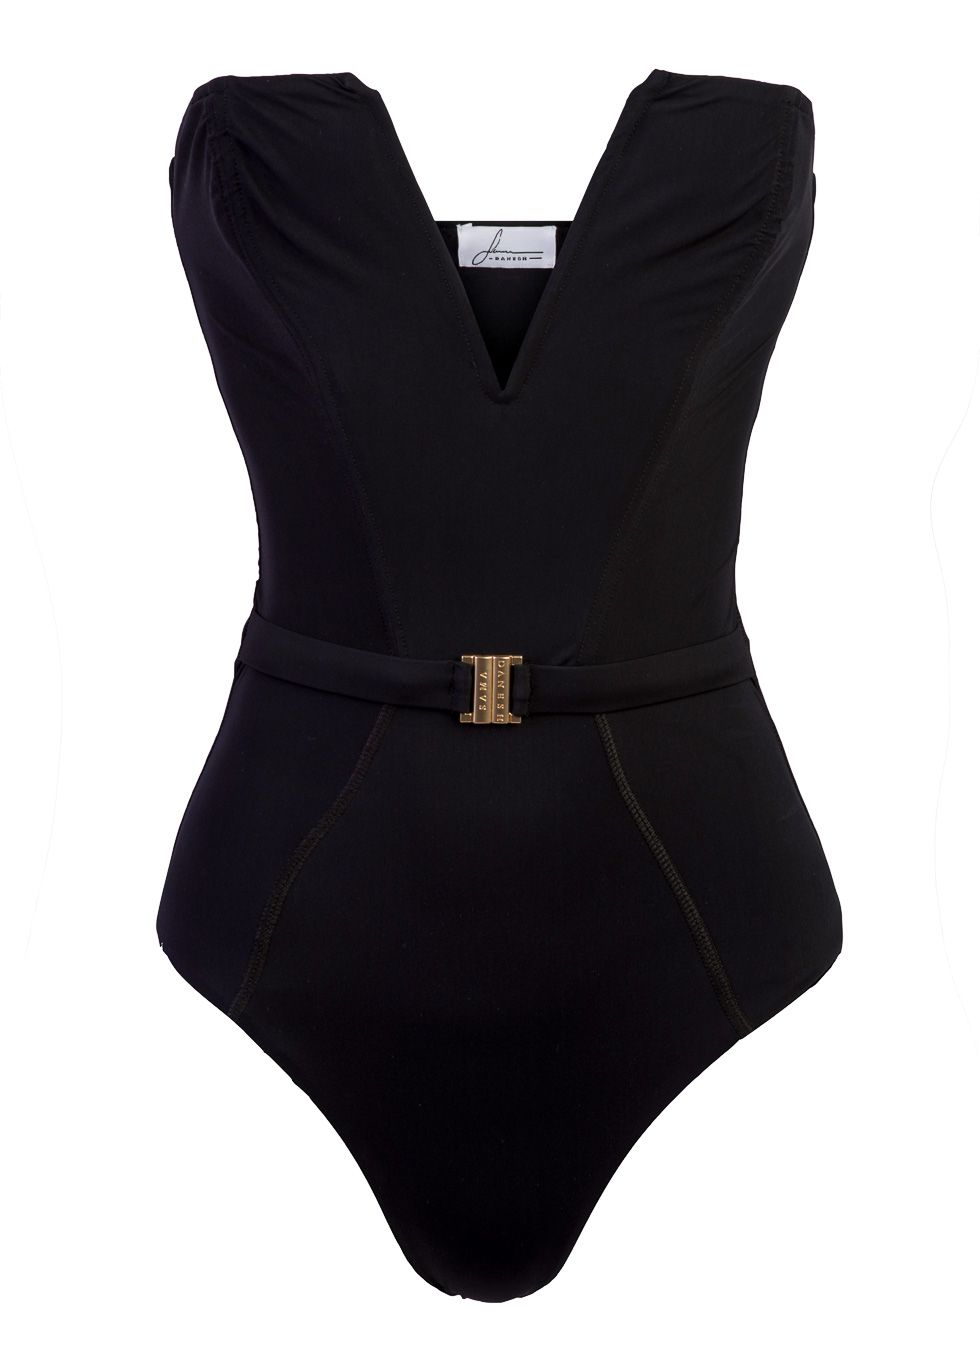 fd6c2831ef Victory Shaping Swimsuit is an elegant figure flattering one piece. This  Body shaping and tummy toning swimsuit is perfect for both small and bigger  busts.